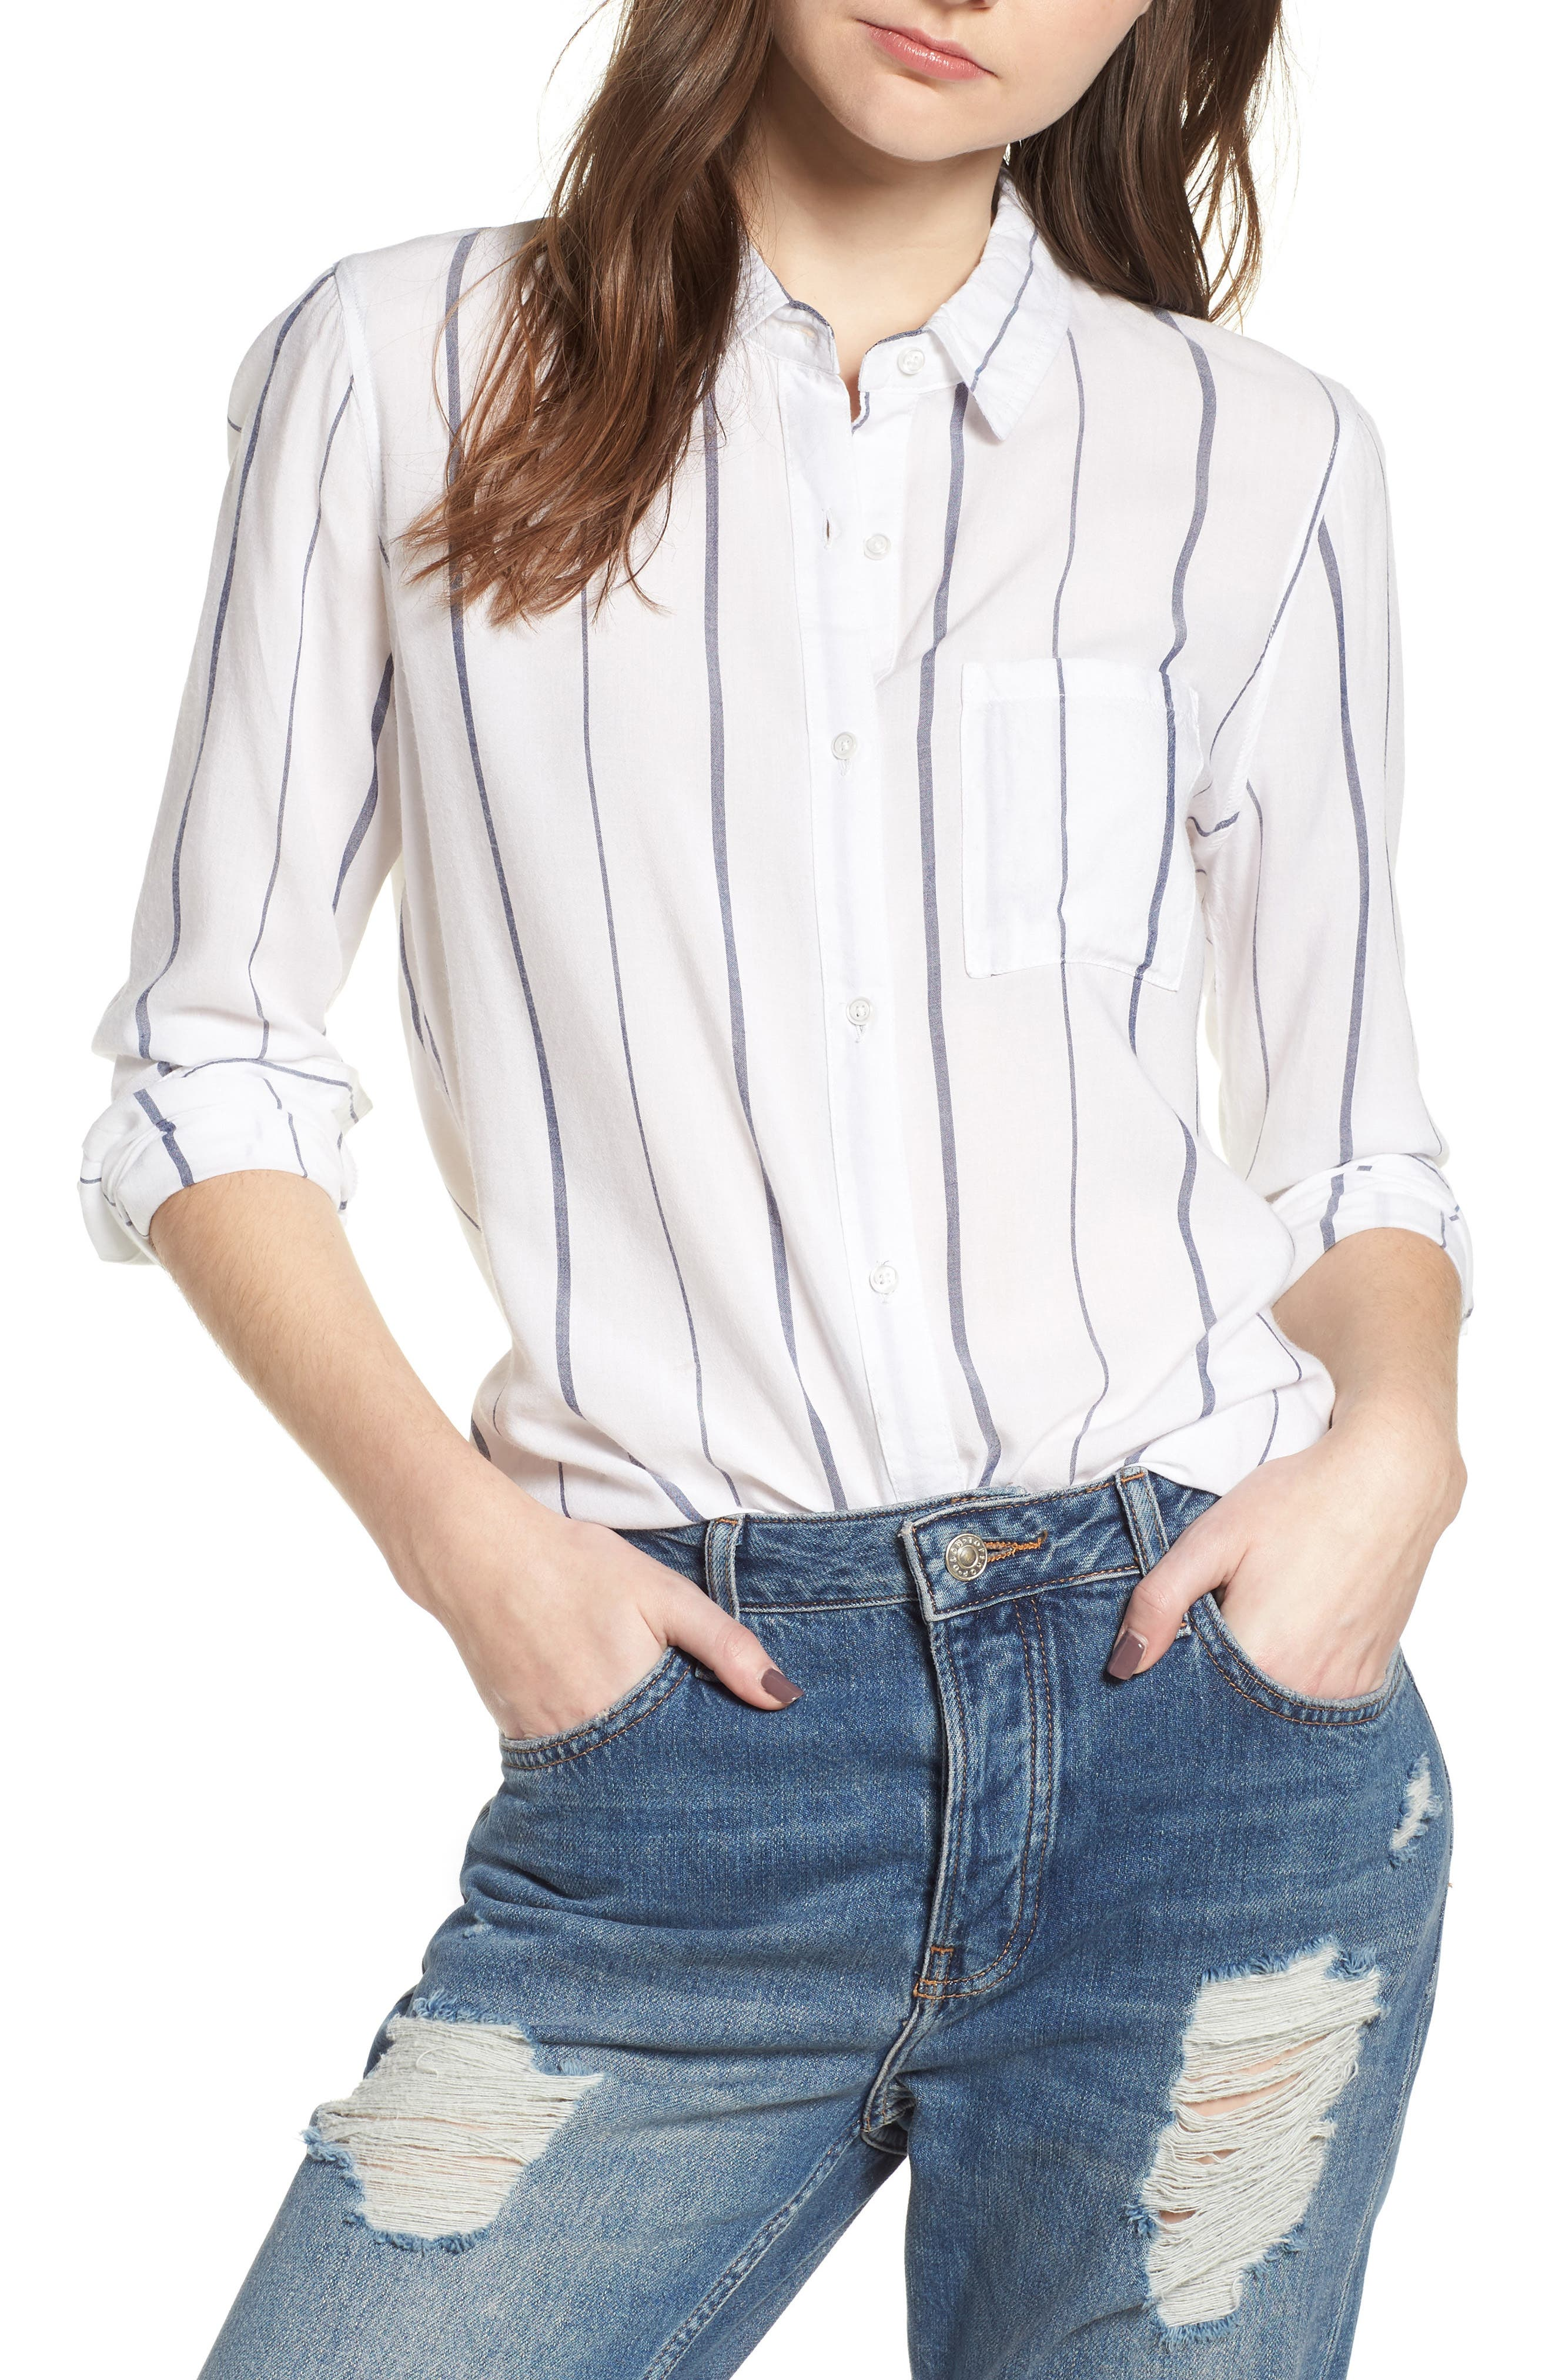 Canyons Stripe Shirt,                         Main,                         color, White/ Navy Stripe